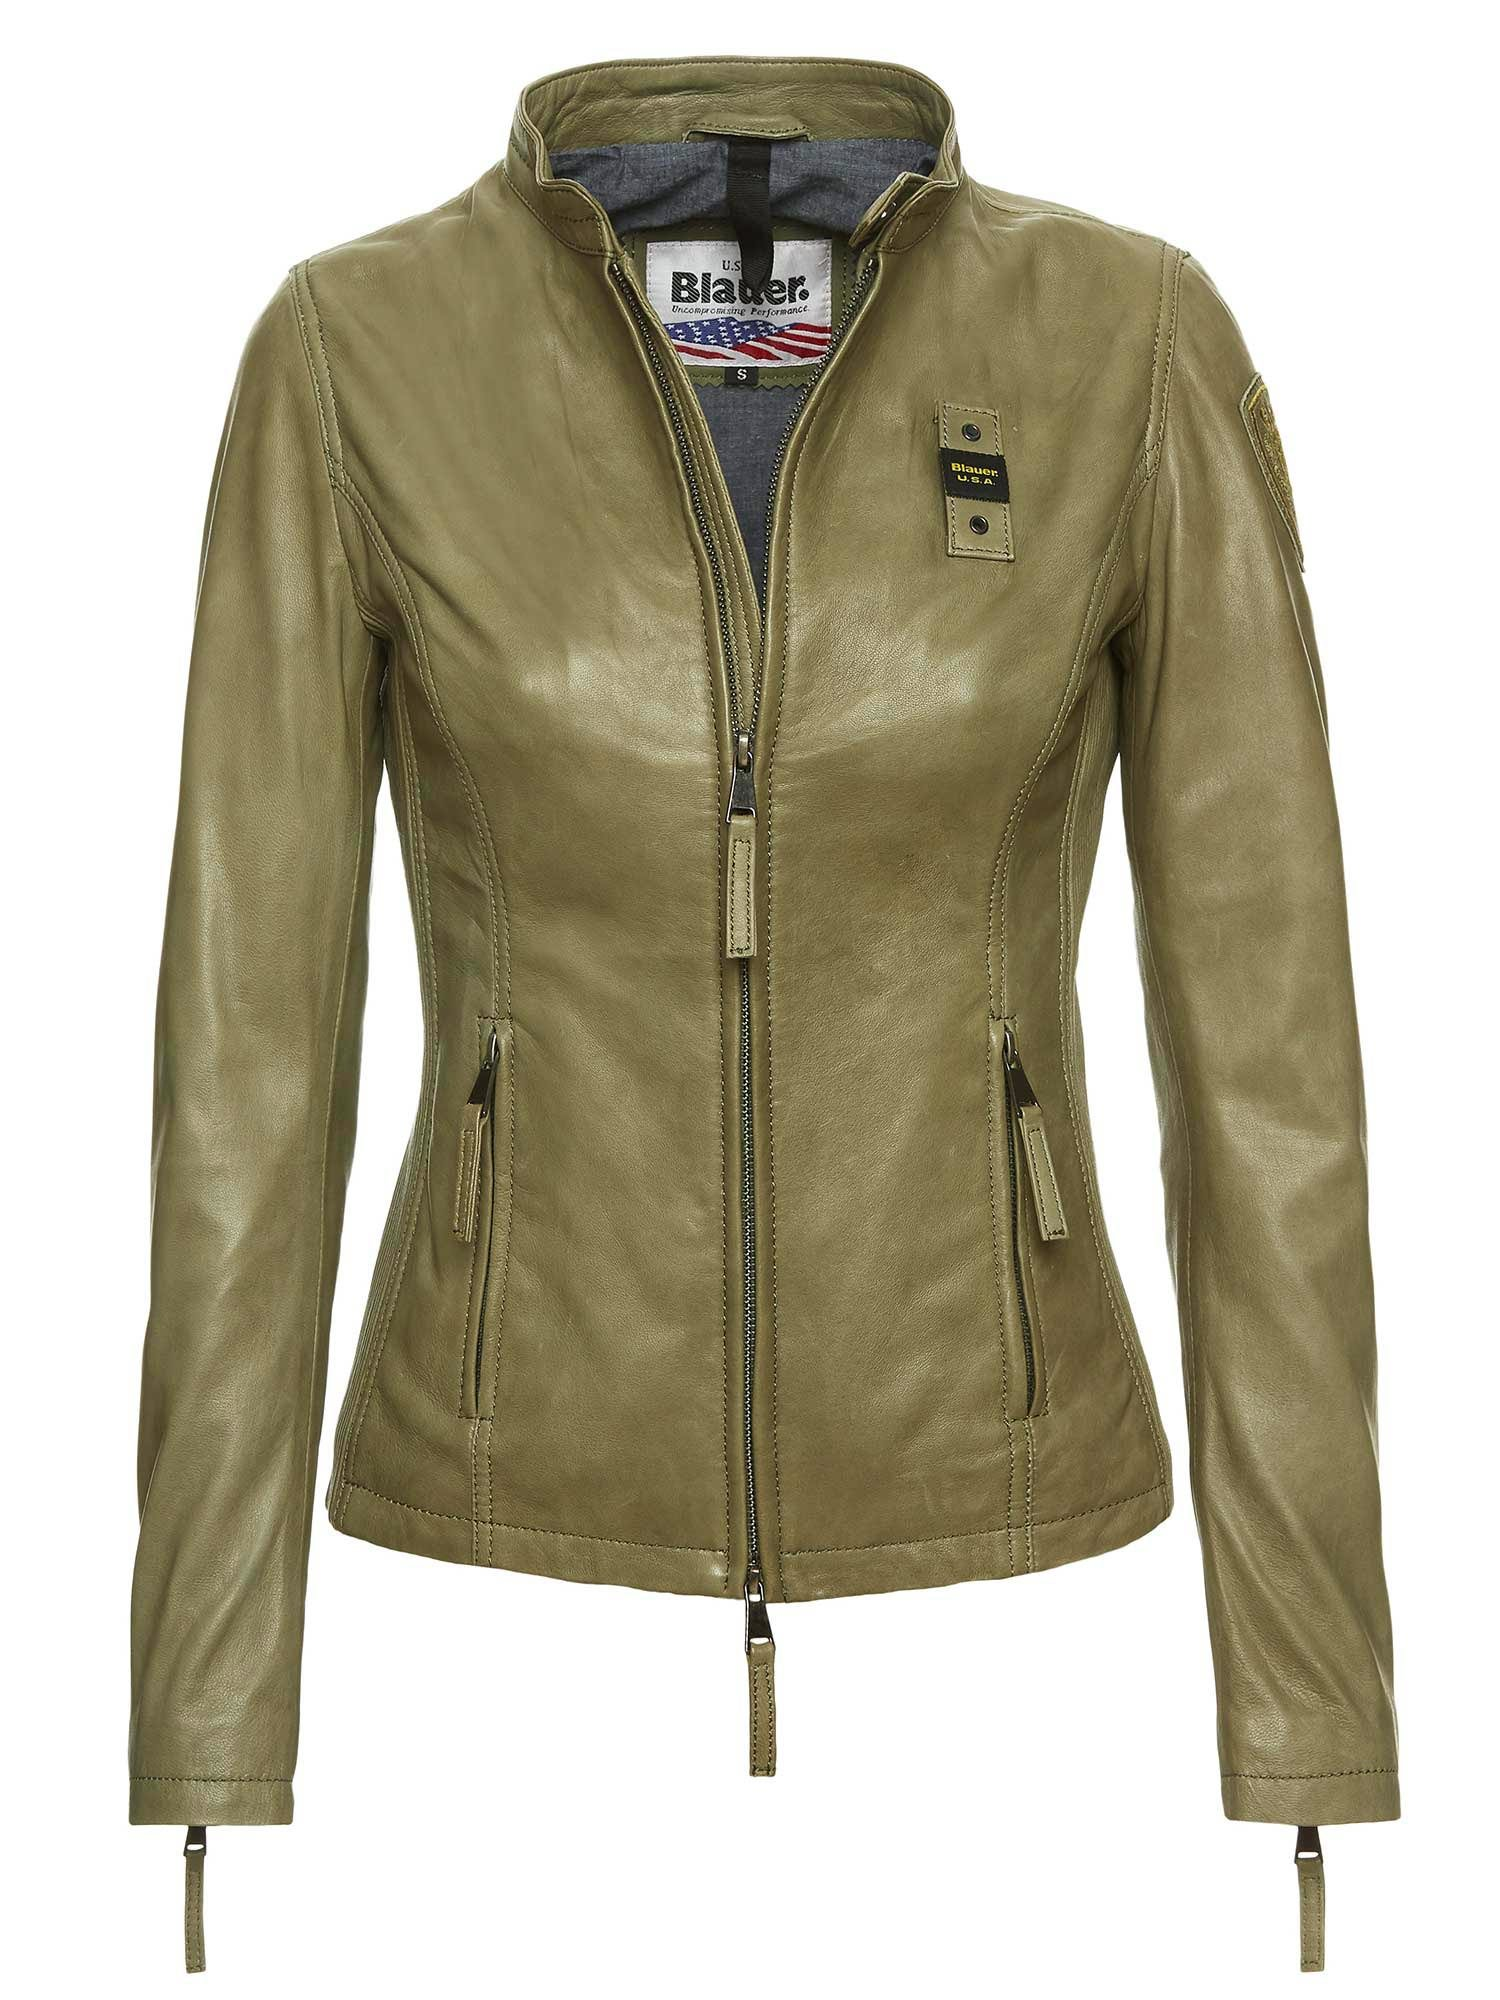 Blauer - HANNAH URBAN BIKER LEATHER JACKET - Green Algae - Blauer